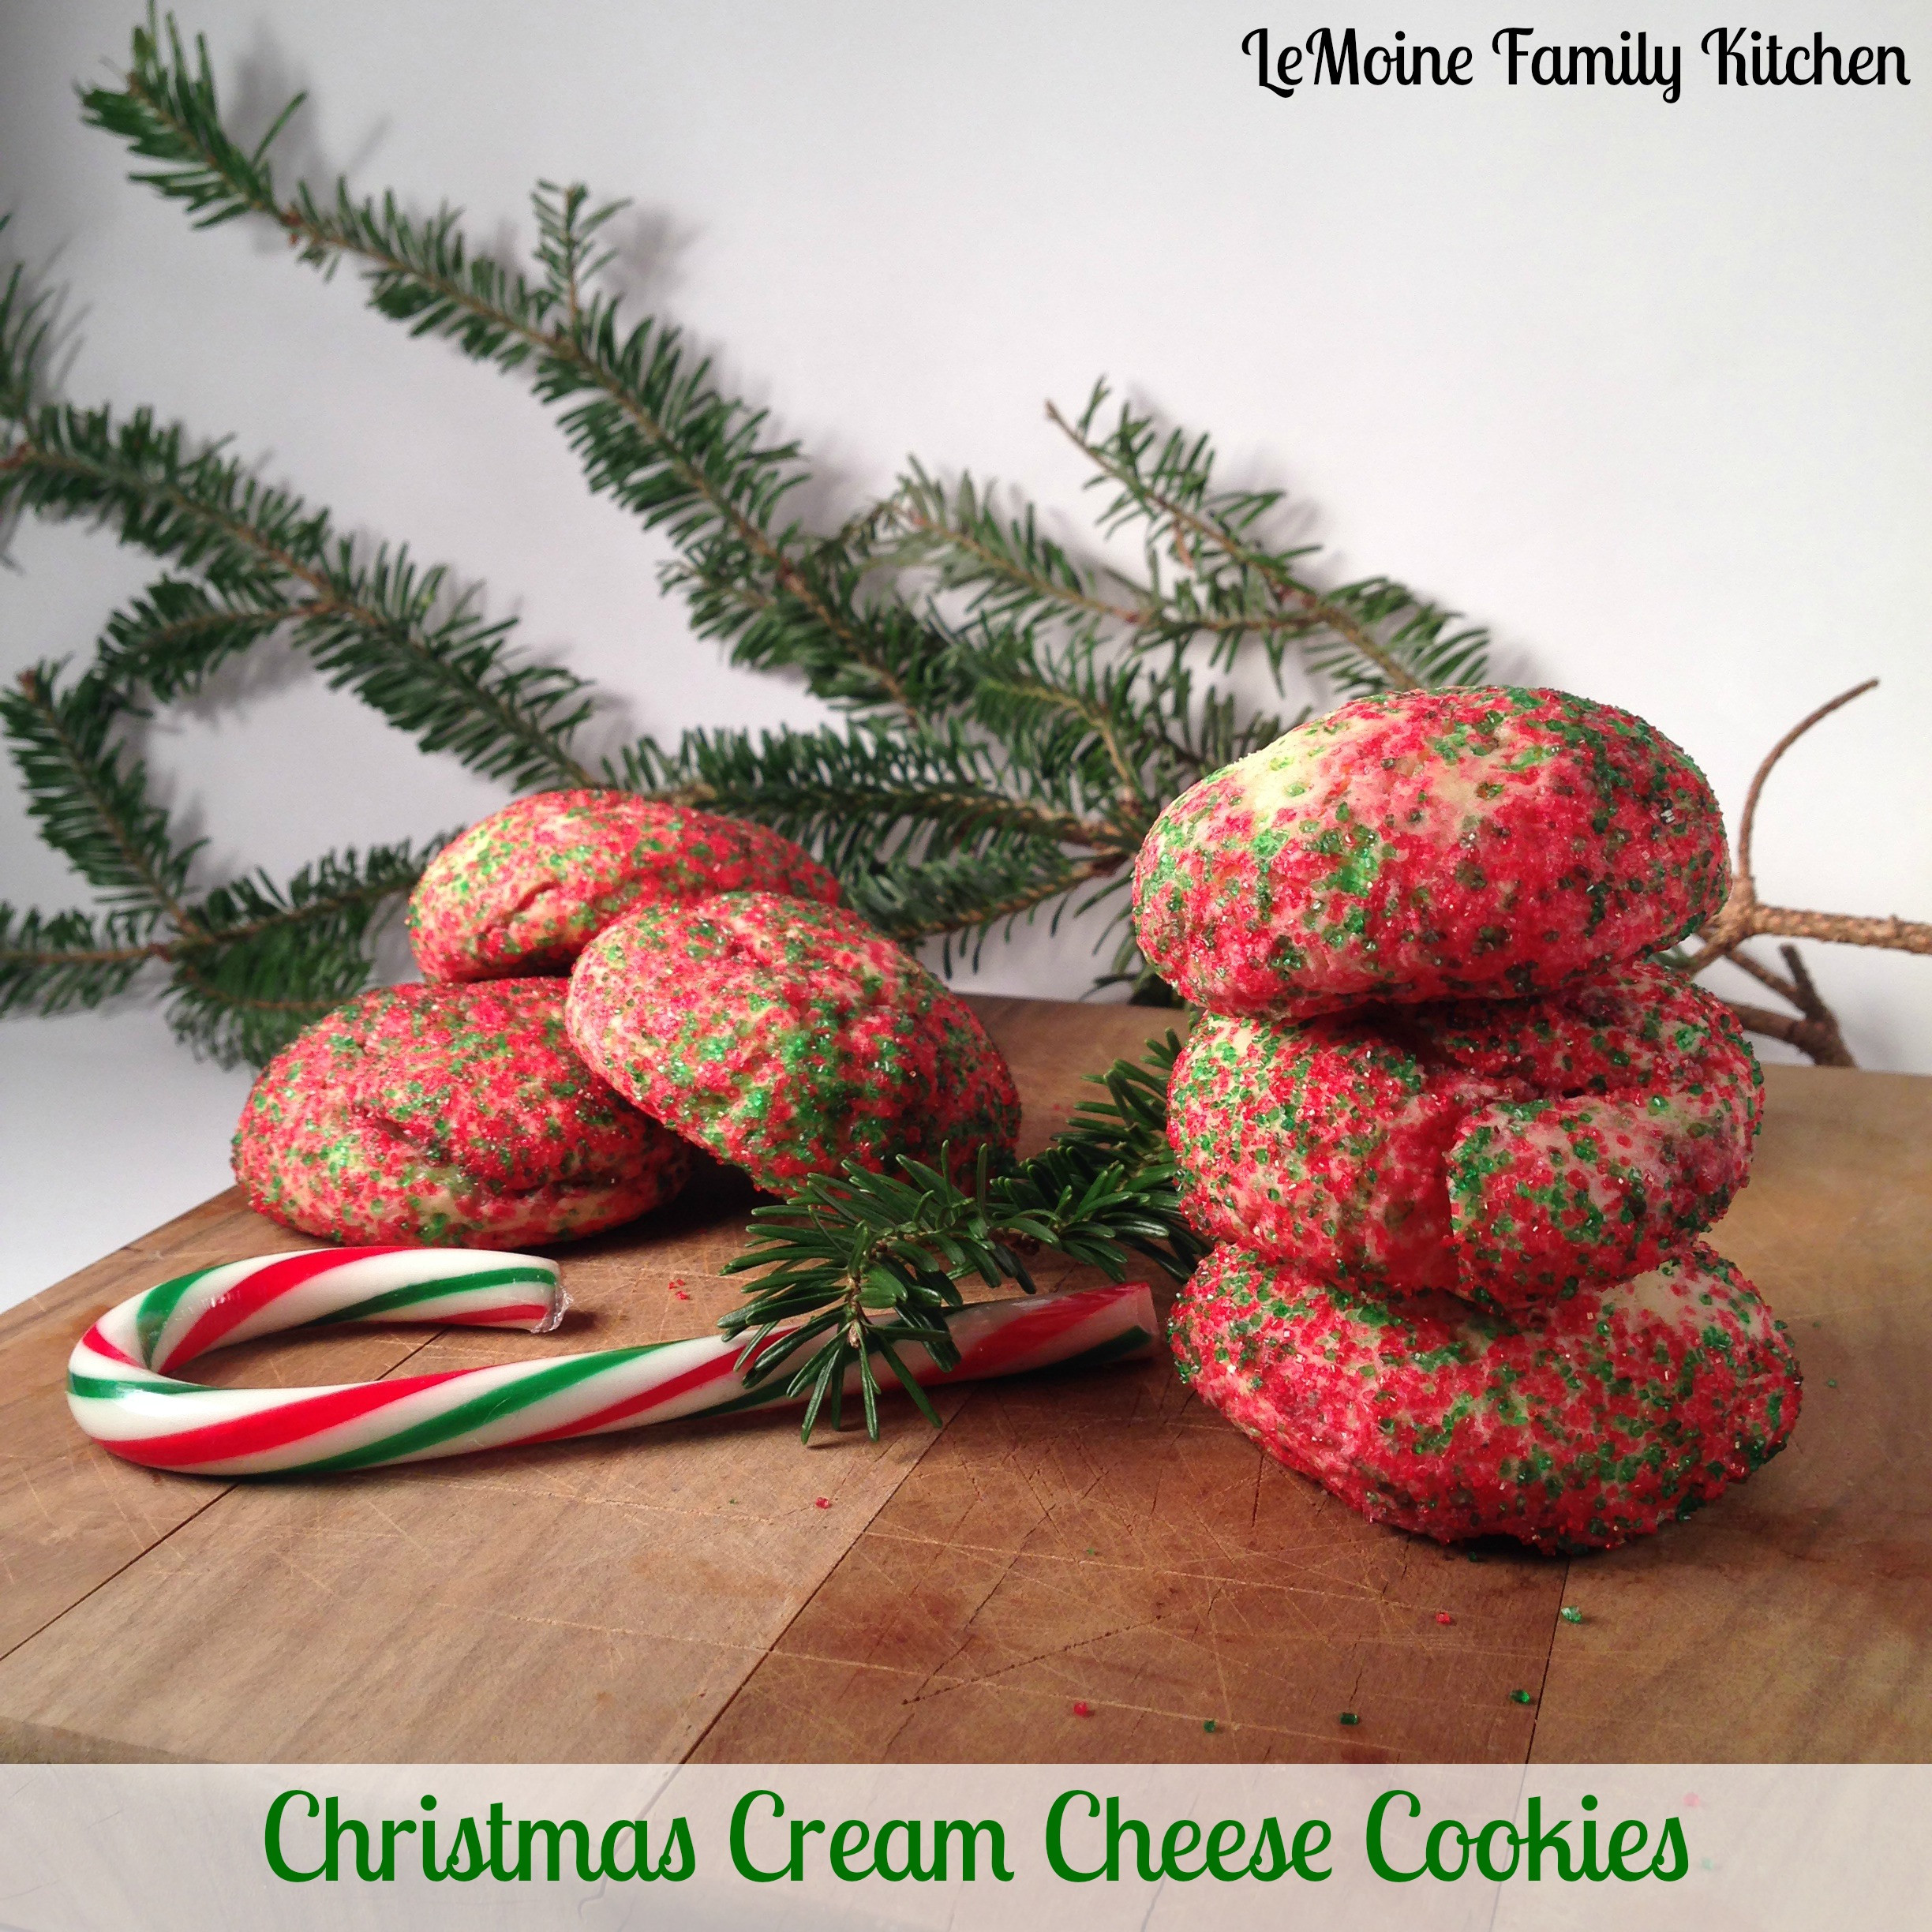 Cream Cheese Christmas Cookies  Christmas Cream Cheese Cookies LeMoine Family Kitchen